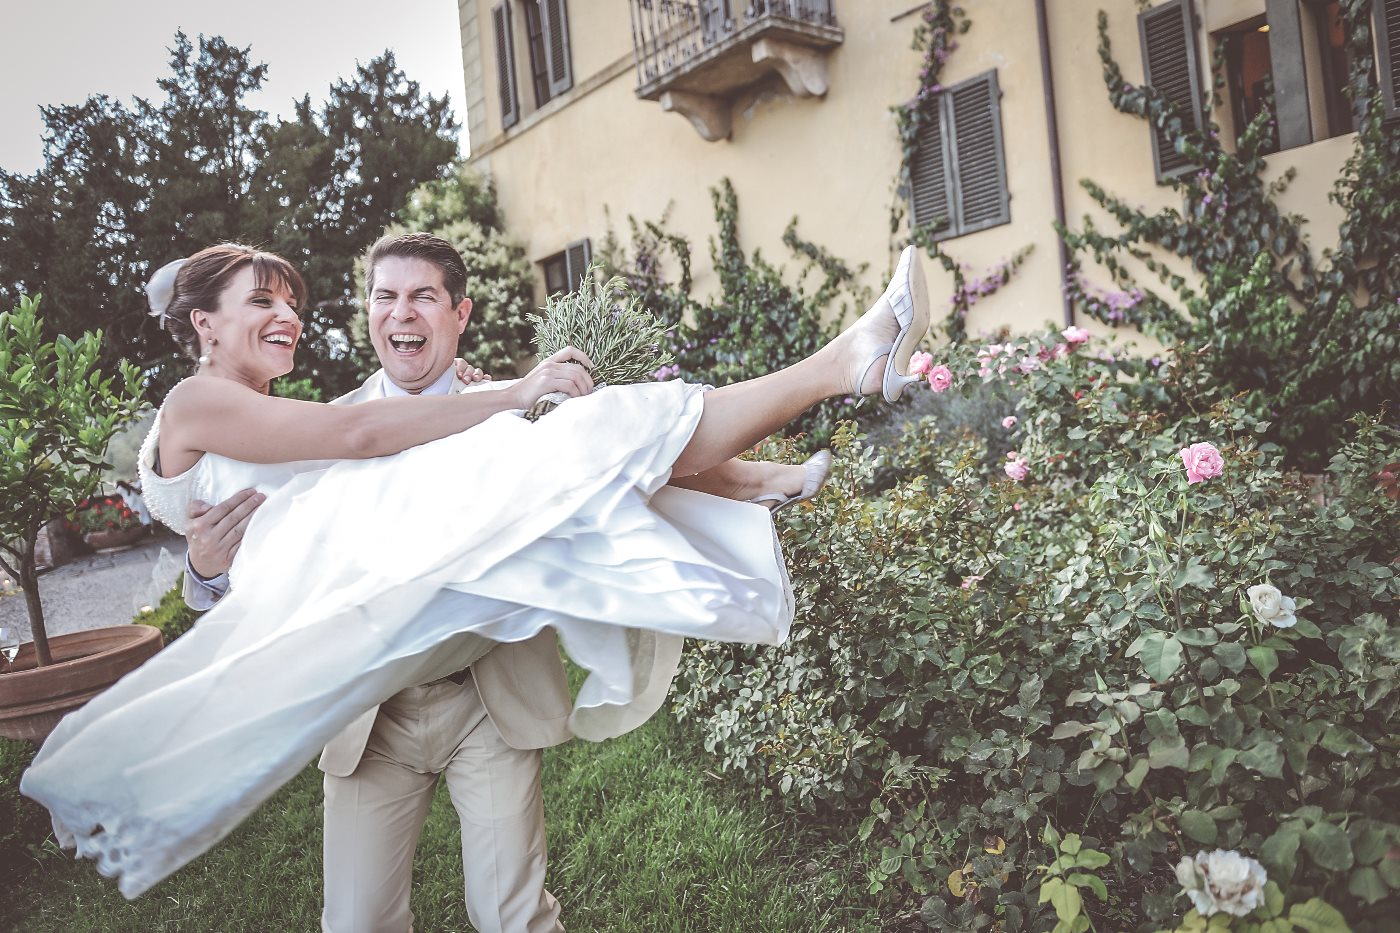 wedding photo villa dievole_16.jpg